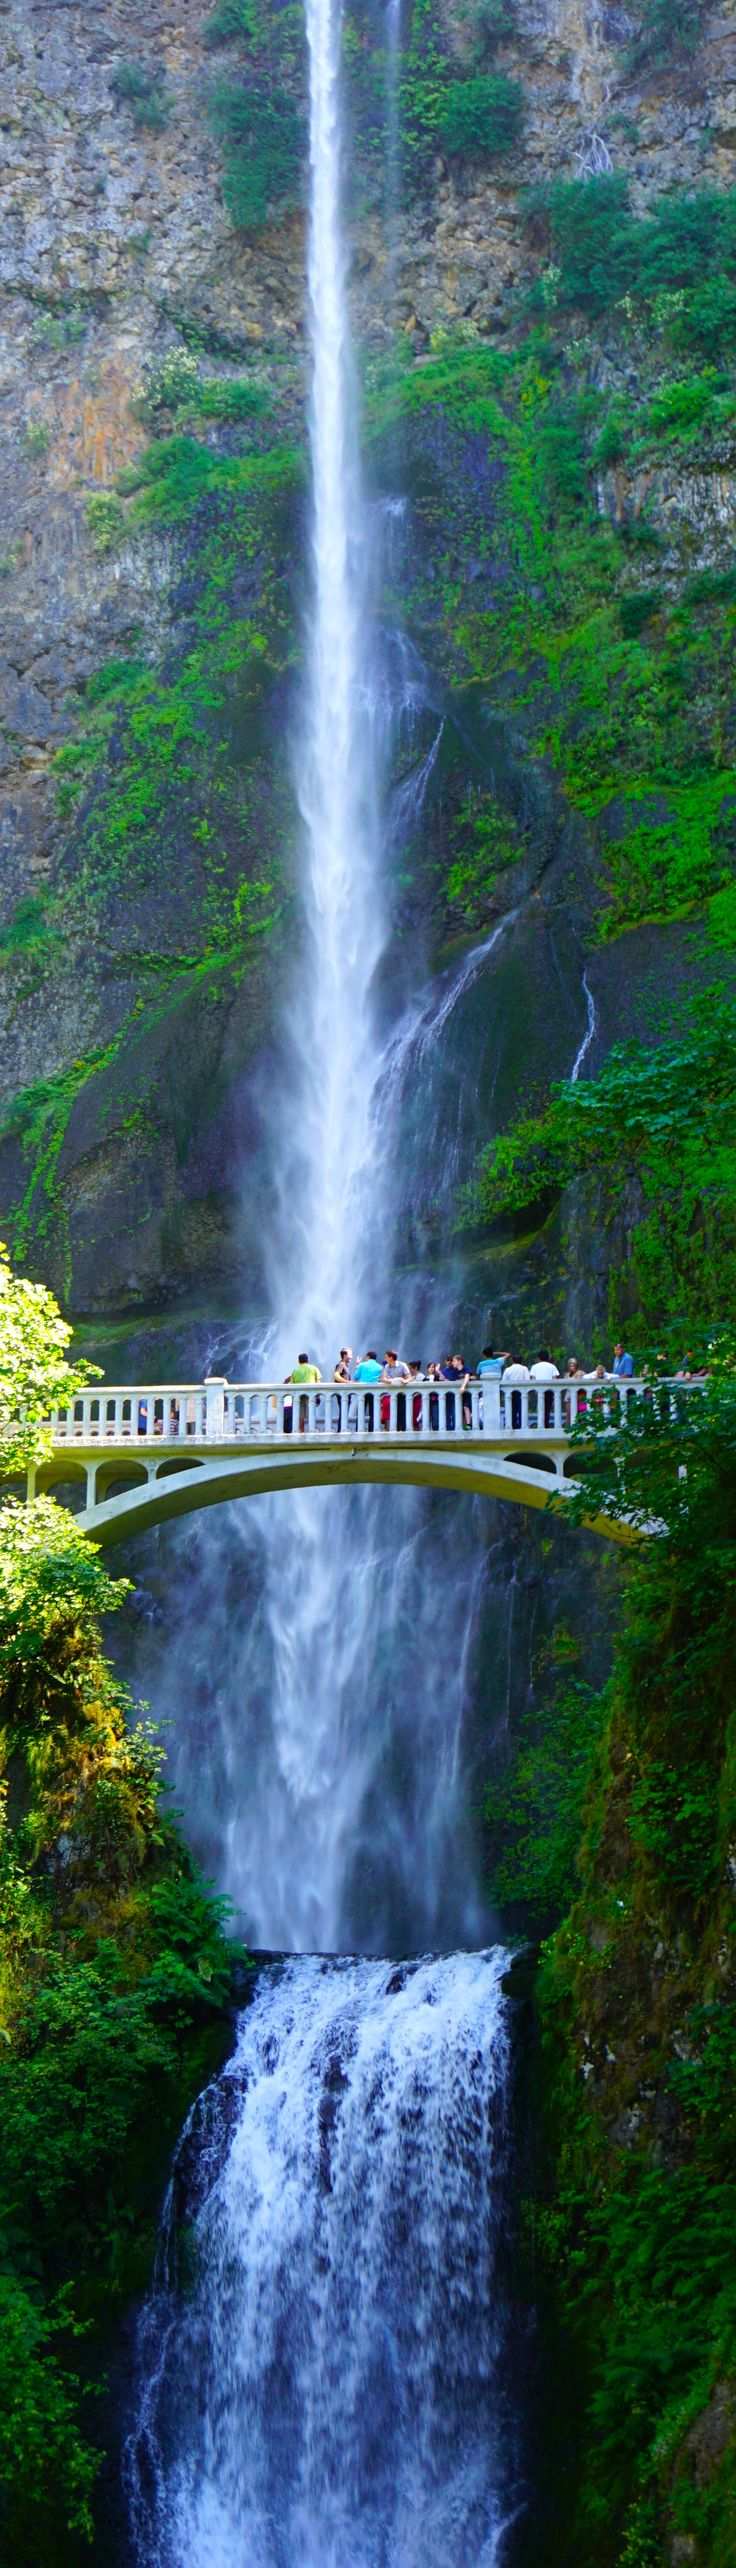 Amazing U.S. Sights You Should Visit Before You Die Multnomah Falls, Oregon, US Like or repin is amazing. Check out All My Love by…